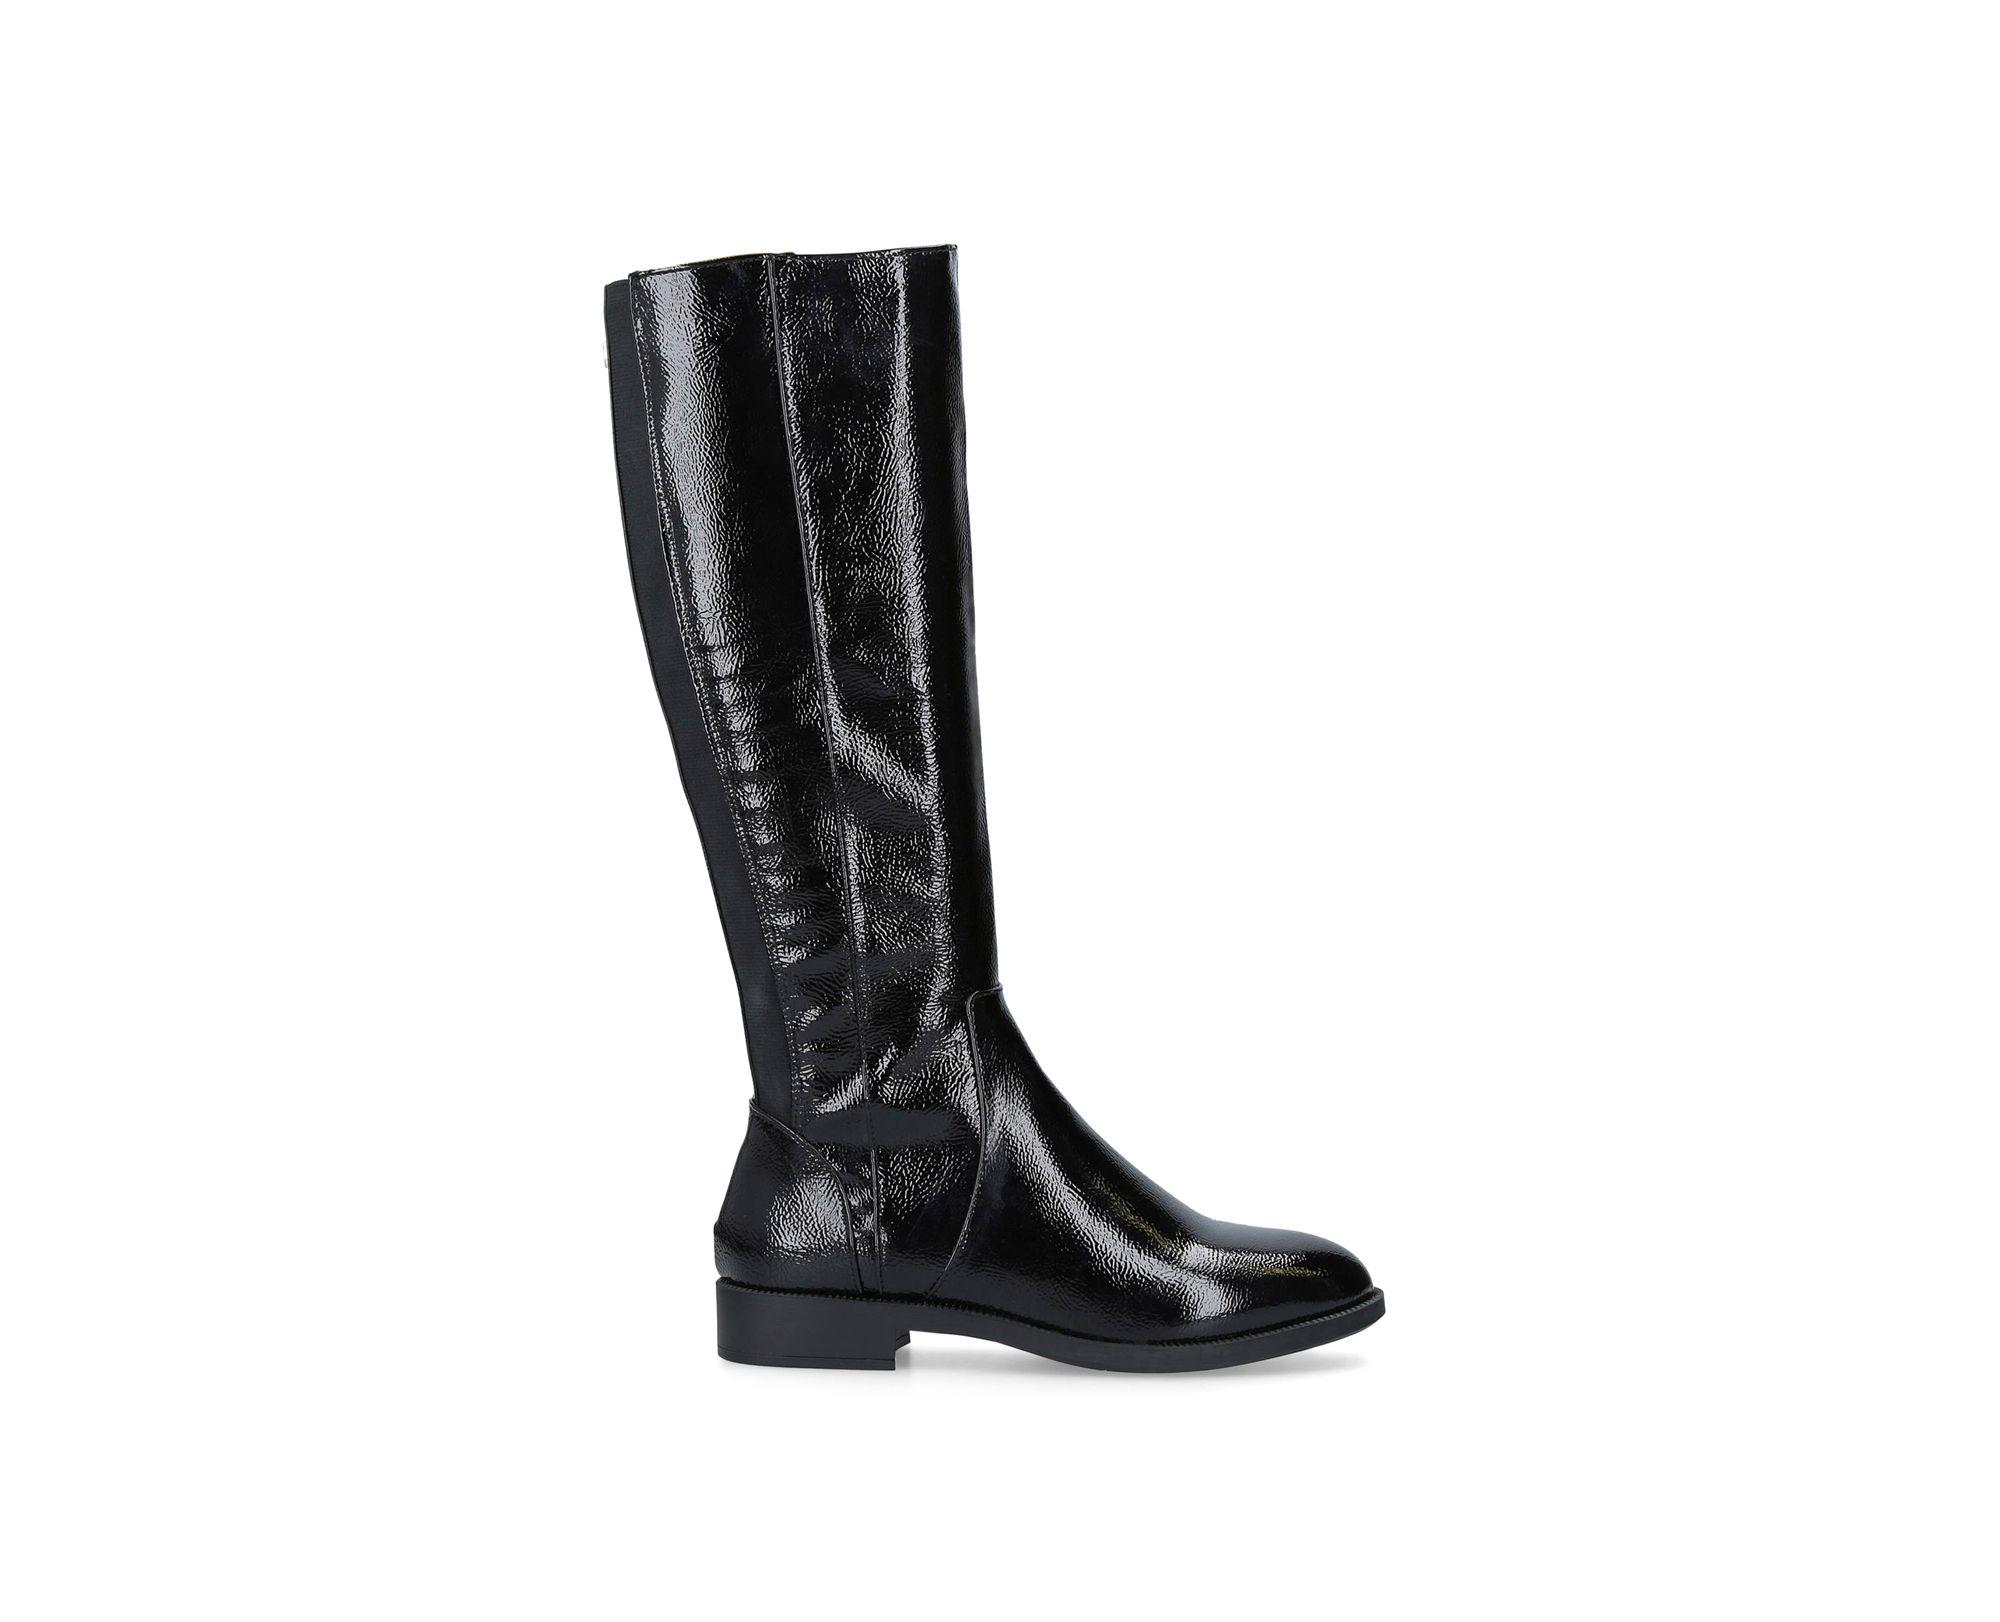 5caa0d121554 Miss Kg Black  hilly  Patent Knee High Boots in Black - Save 34% - Lyst